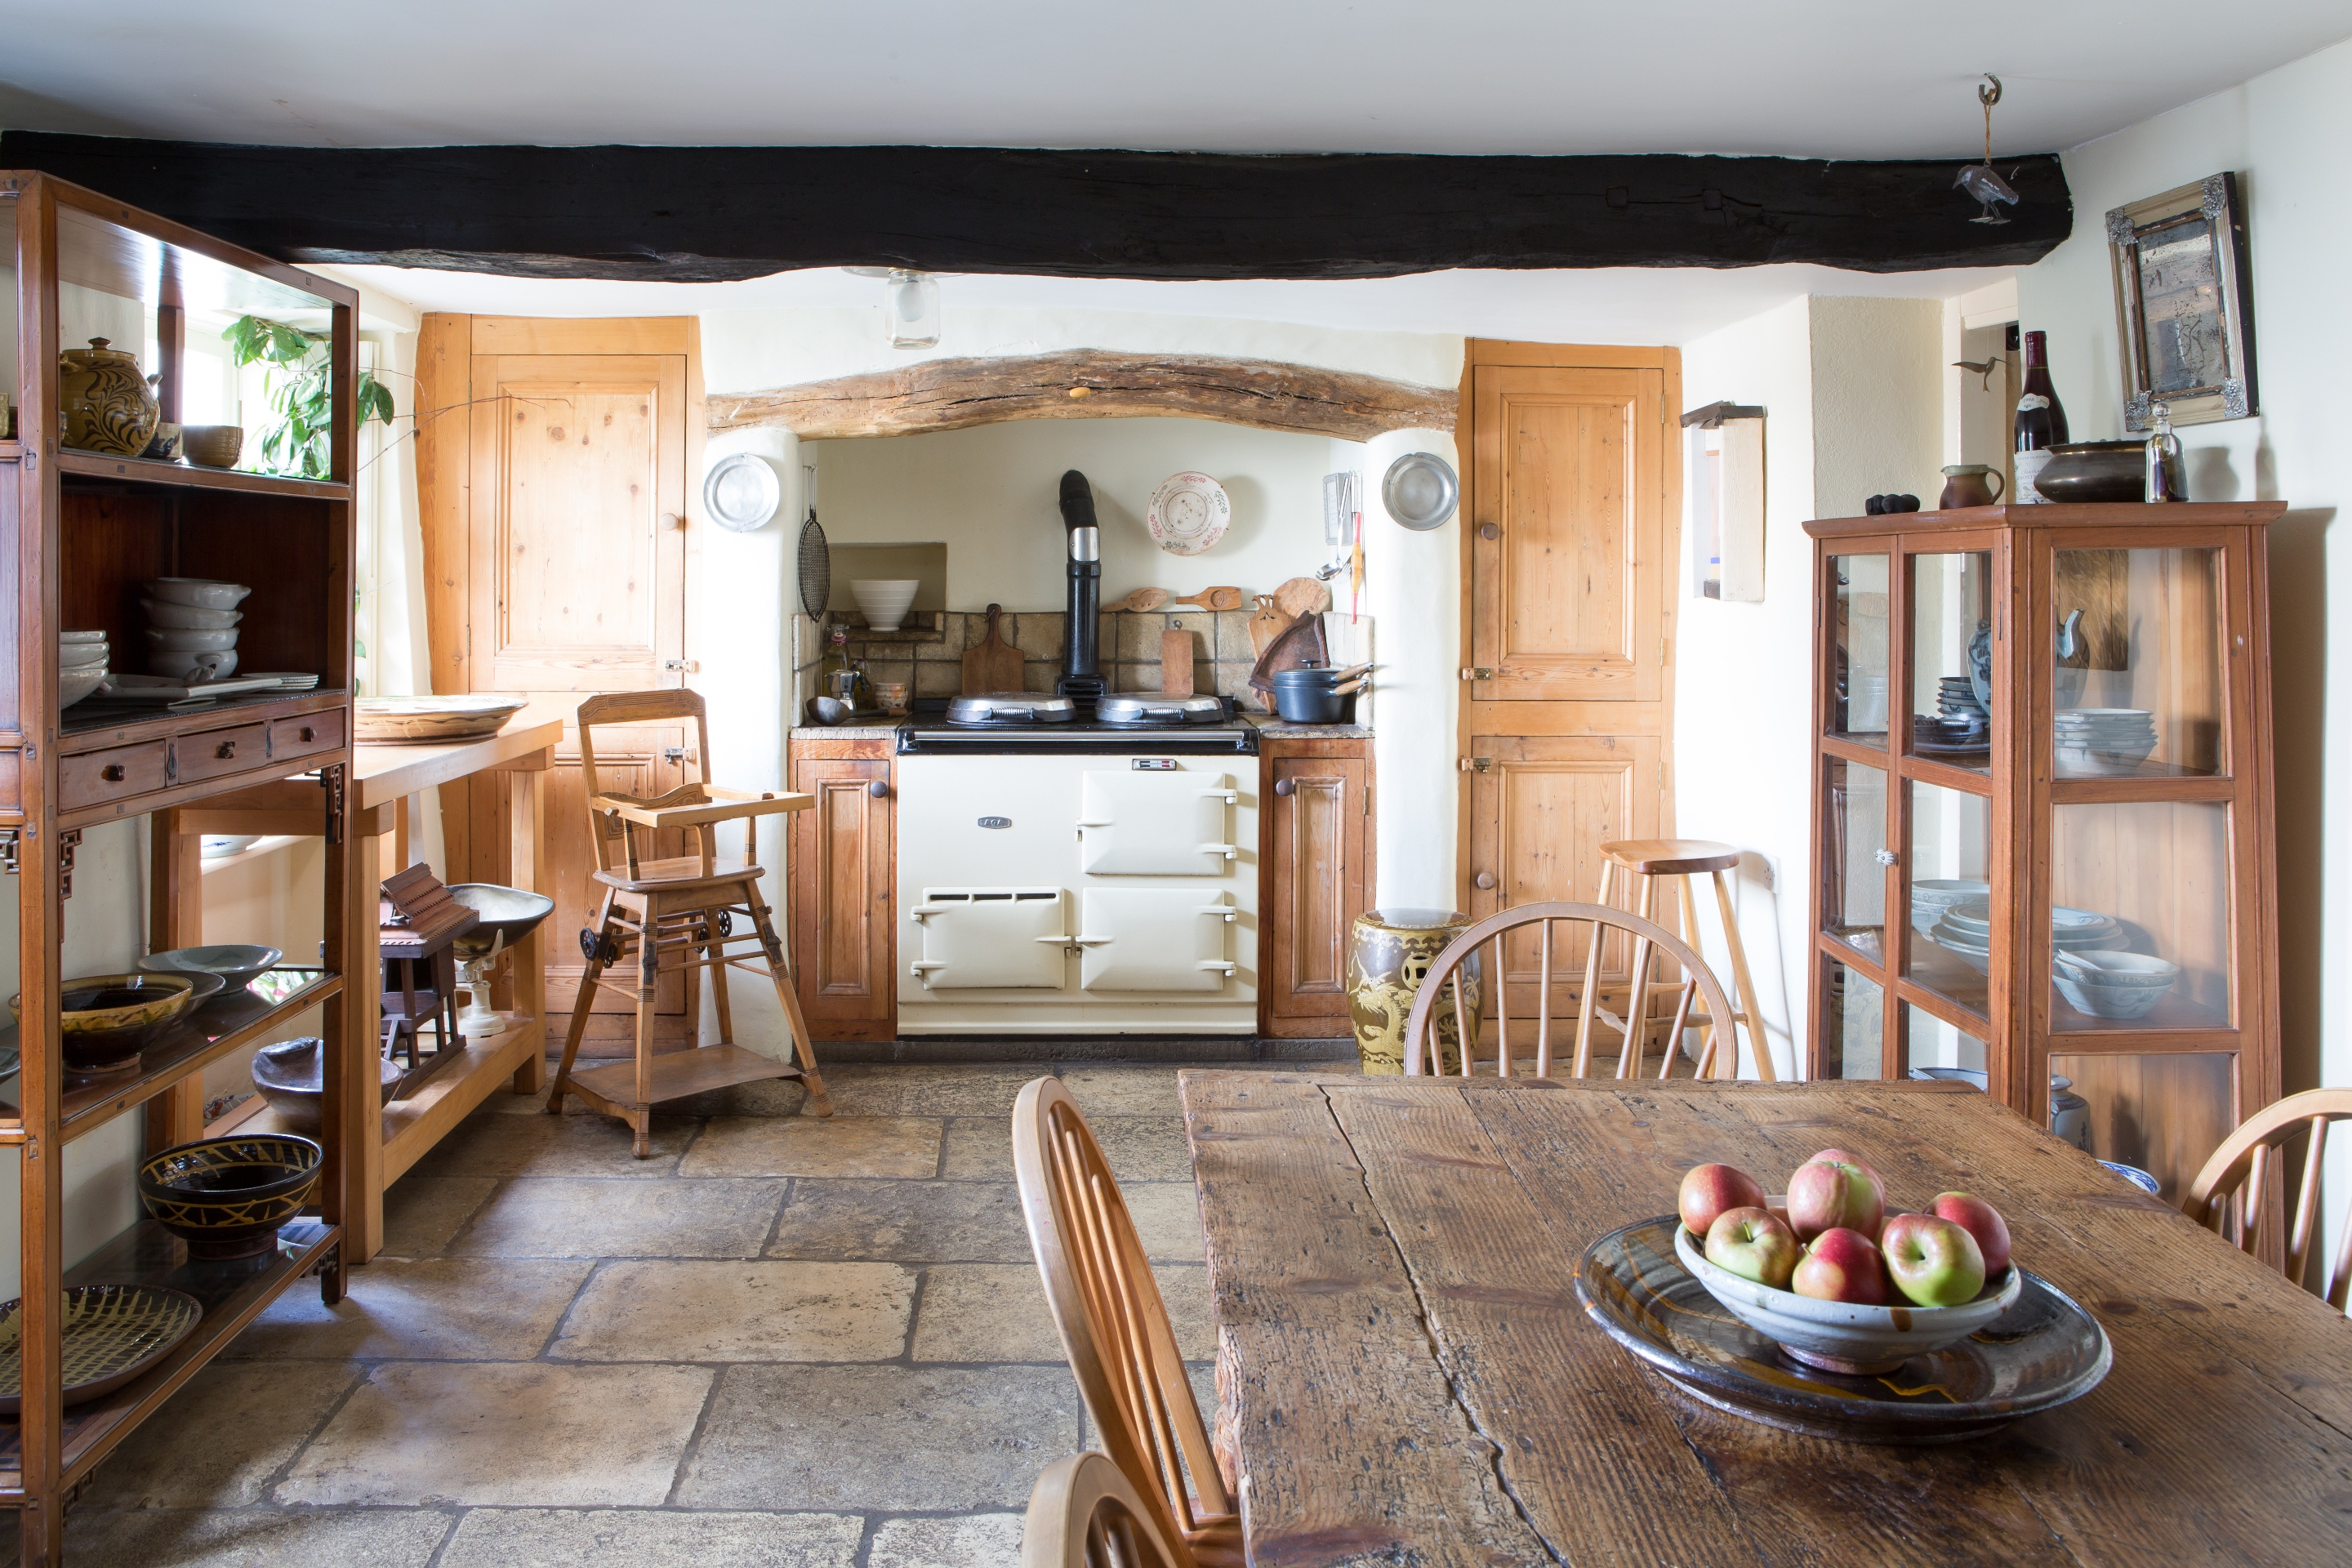 The kitchen at 2 Harton Manor B&B, the perfect place to stay for bed and breakfast in North Devon and North Cornwall